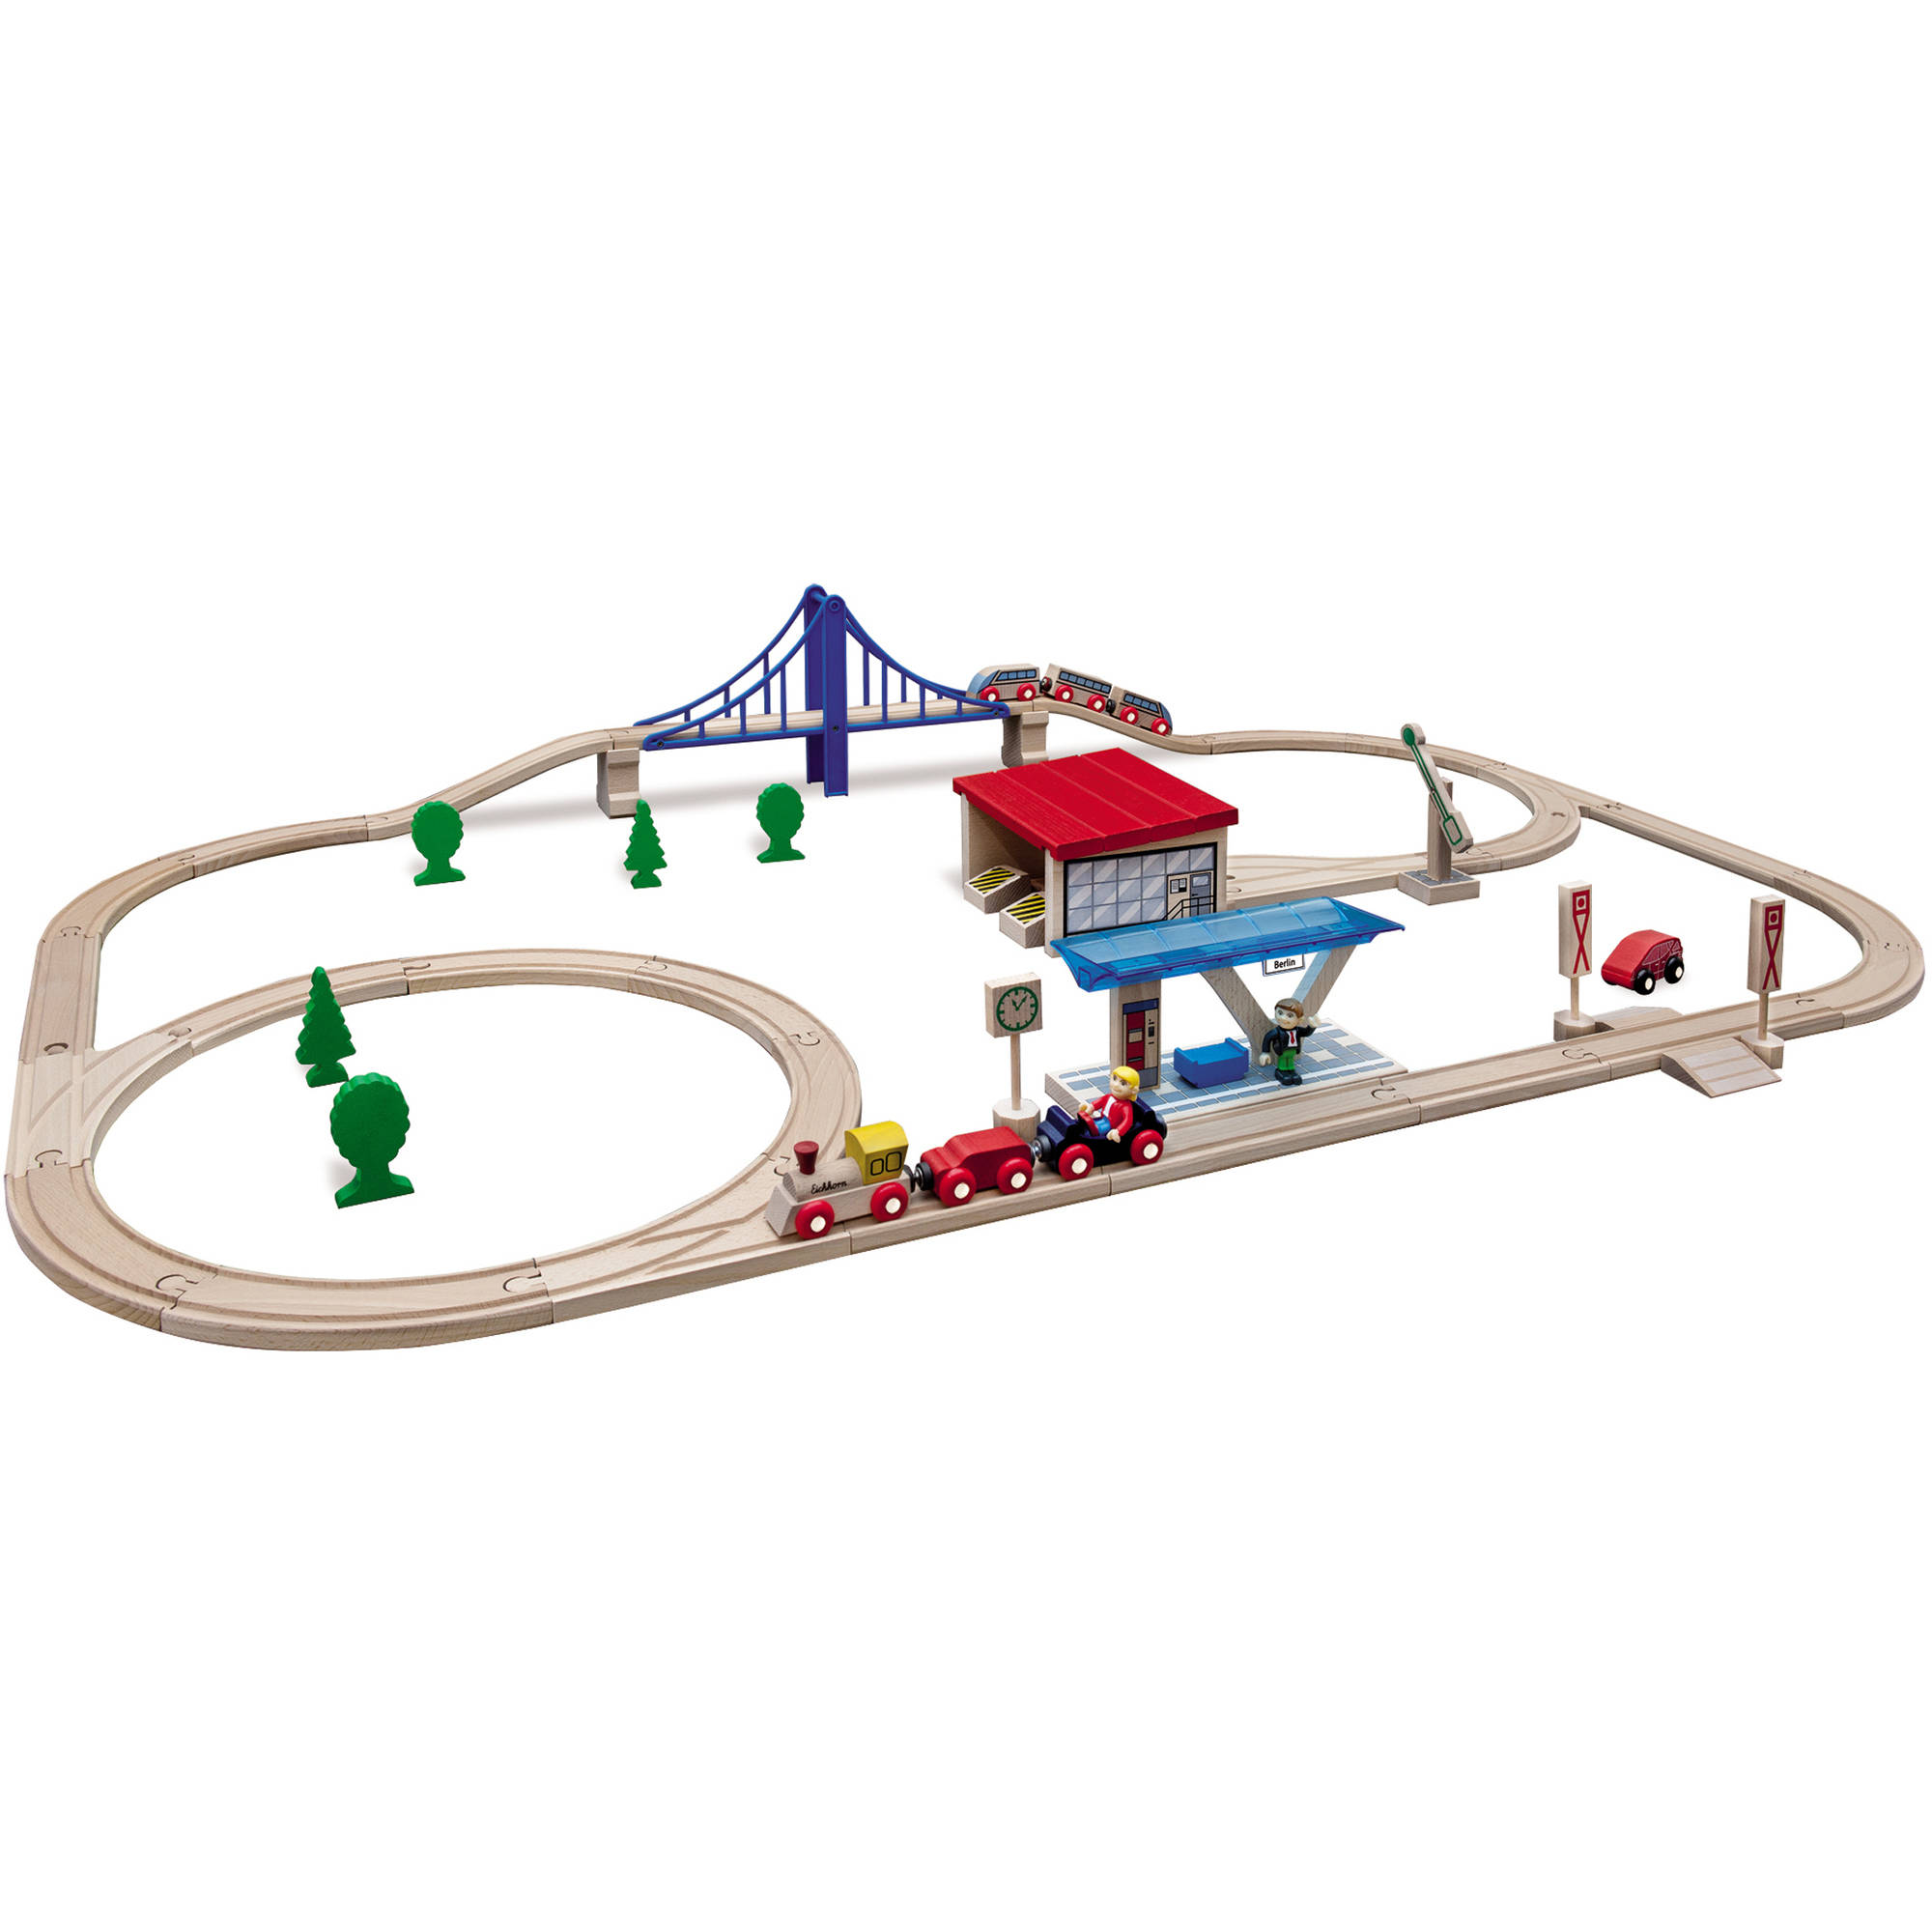 Eichhorn 58-Piece Large Wooden Train Set